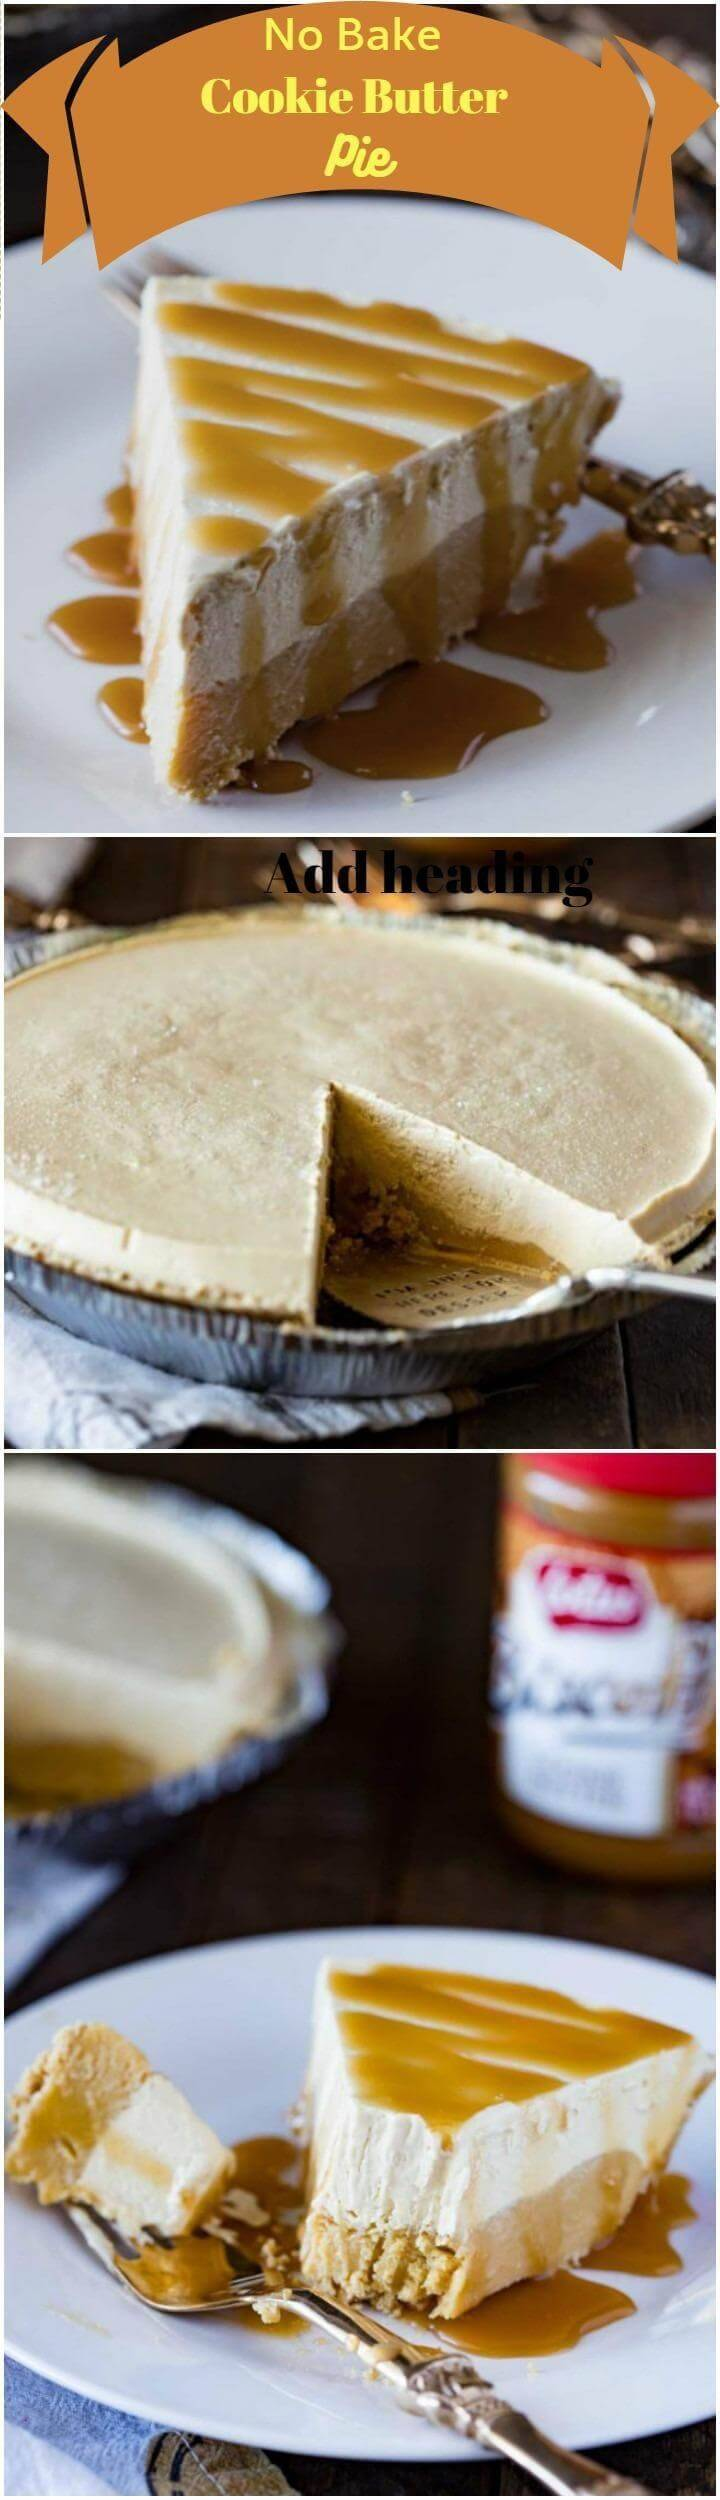 no-bake cookie butter pie